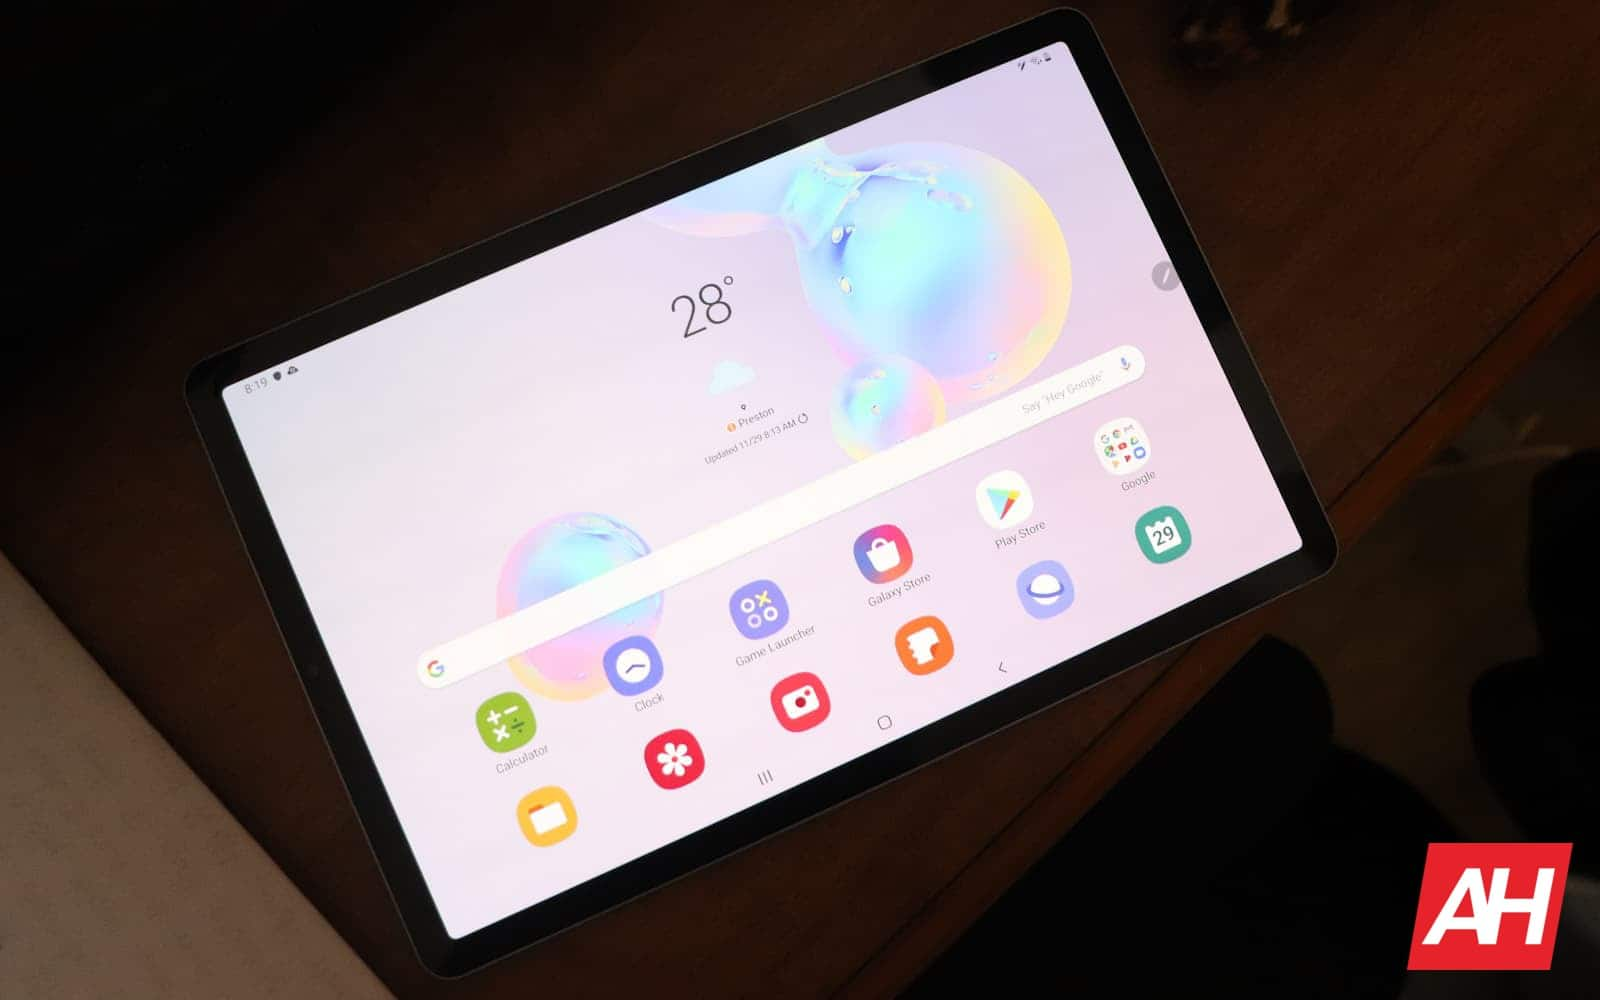 Samsung Galaxy Tab S6 Review 04 Display AH 2019